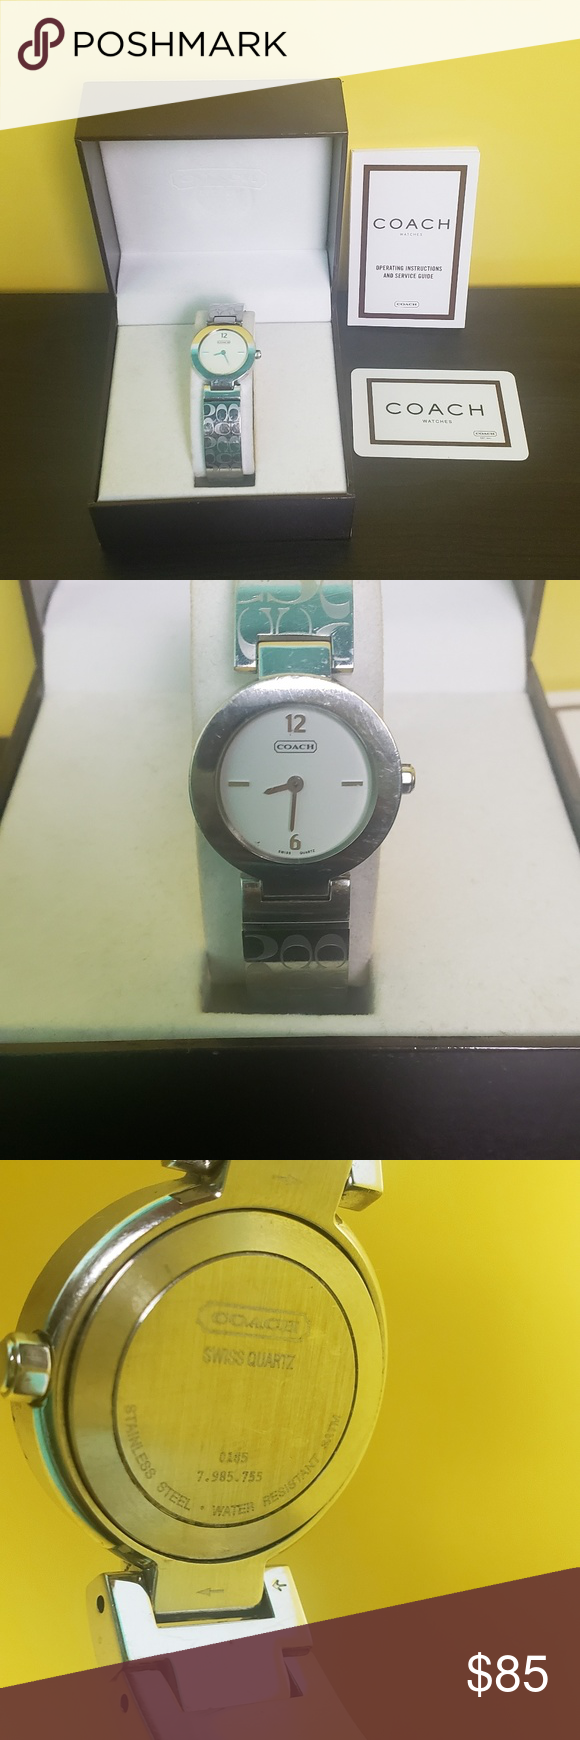 Coach Signature Logo Watch 100 Authentic Stainless Steel Excellent Used Condition Coach Accessories Watches Signature Logo Watches Logo Coach